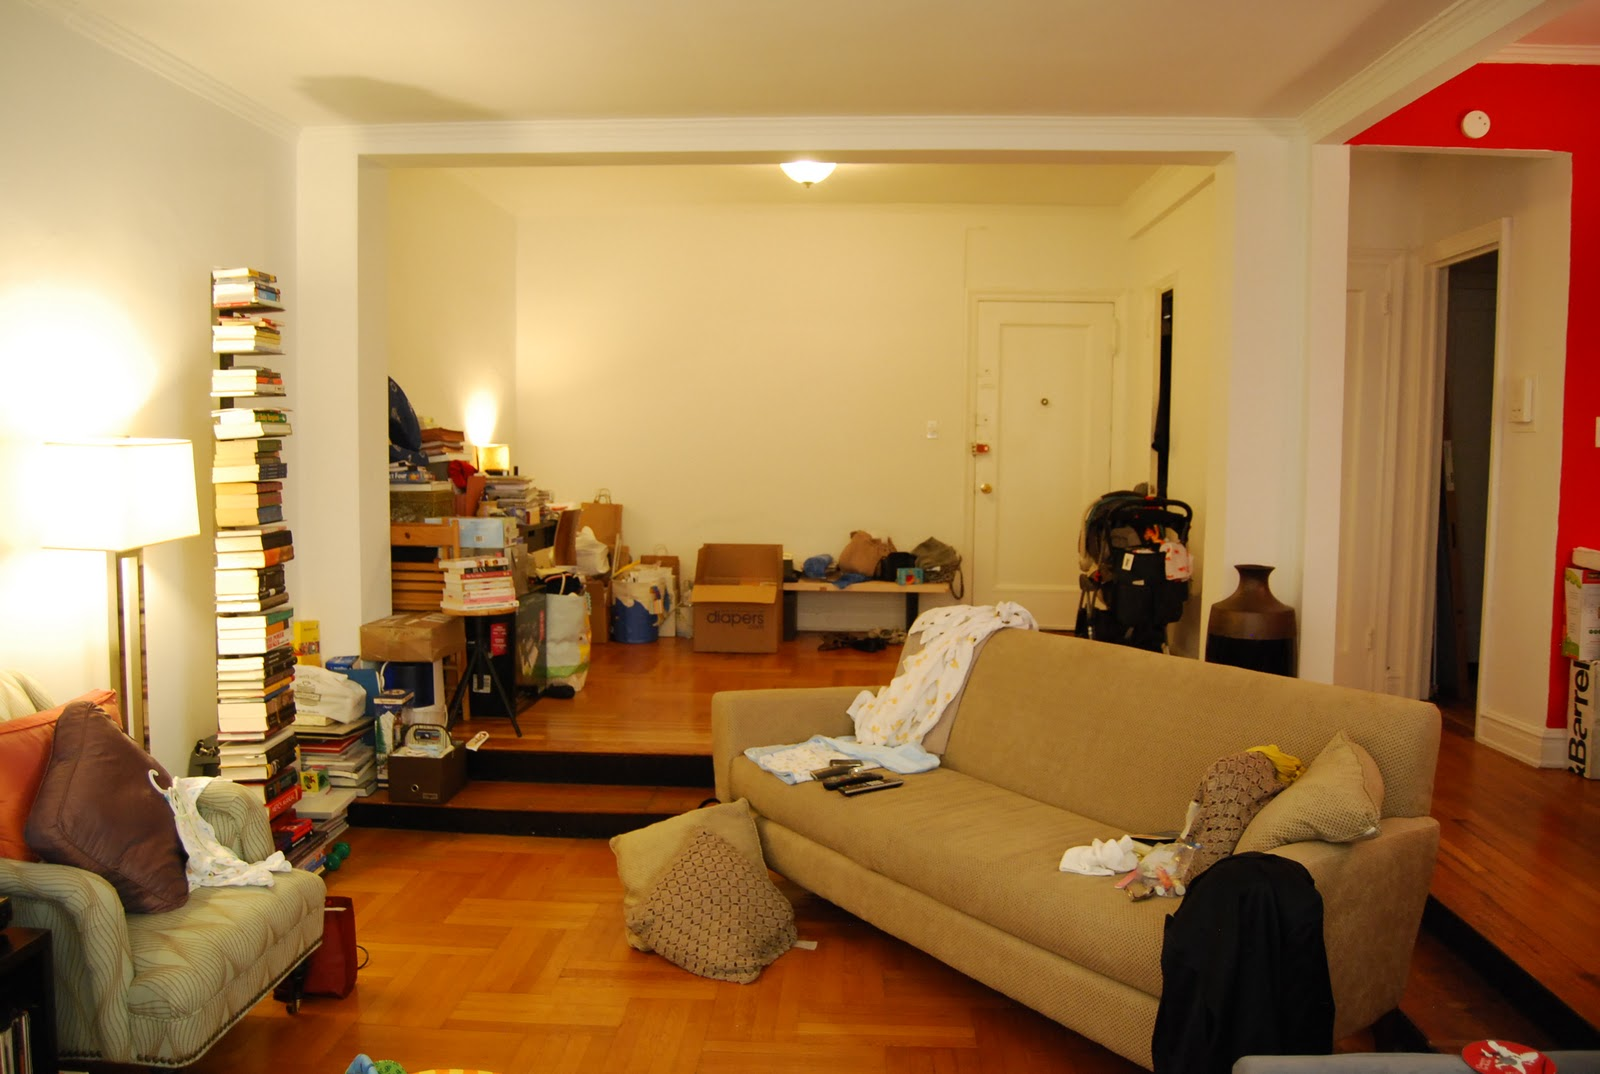 A Flash Redesign Brooklyn Living Room Before AND After